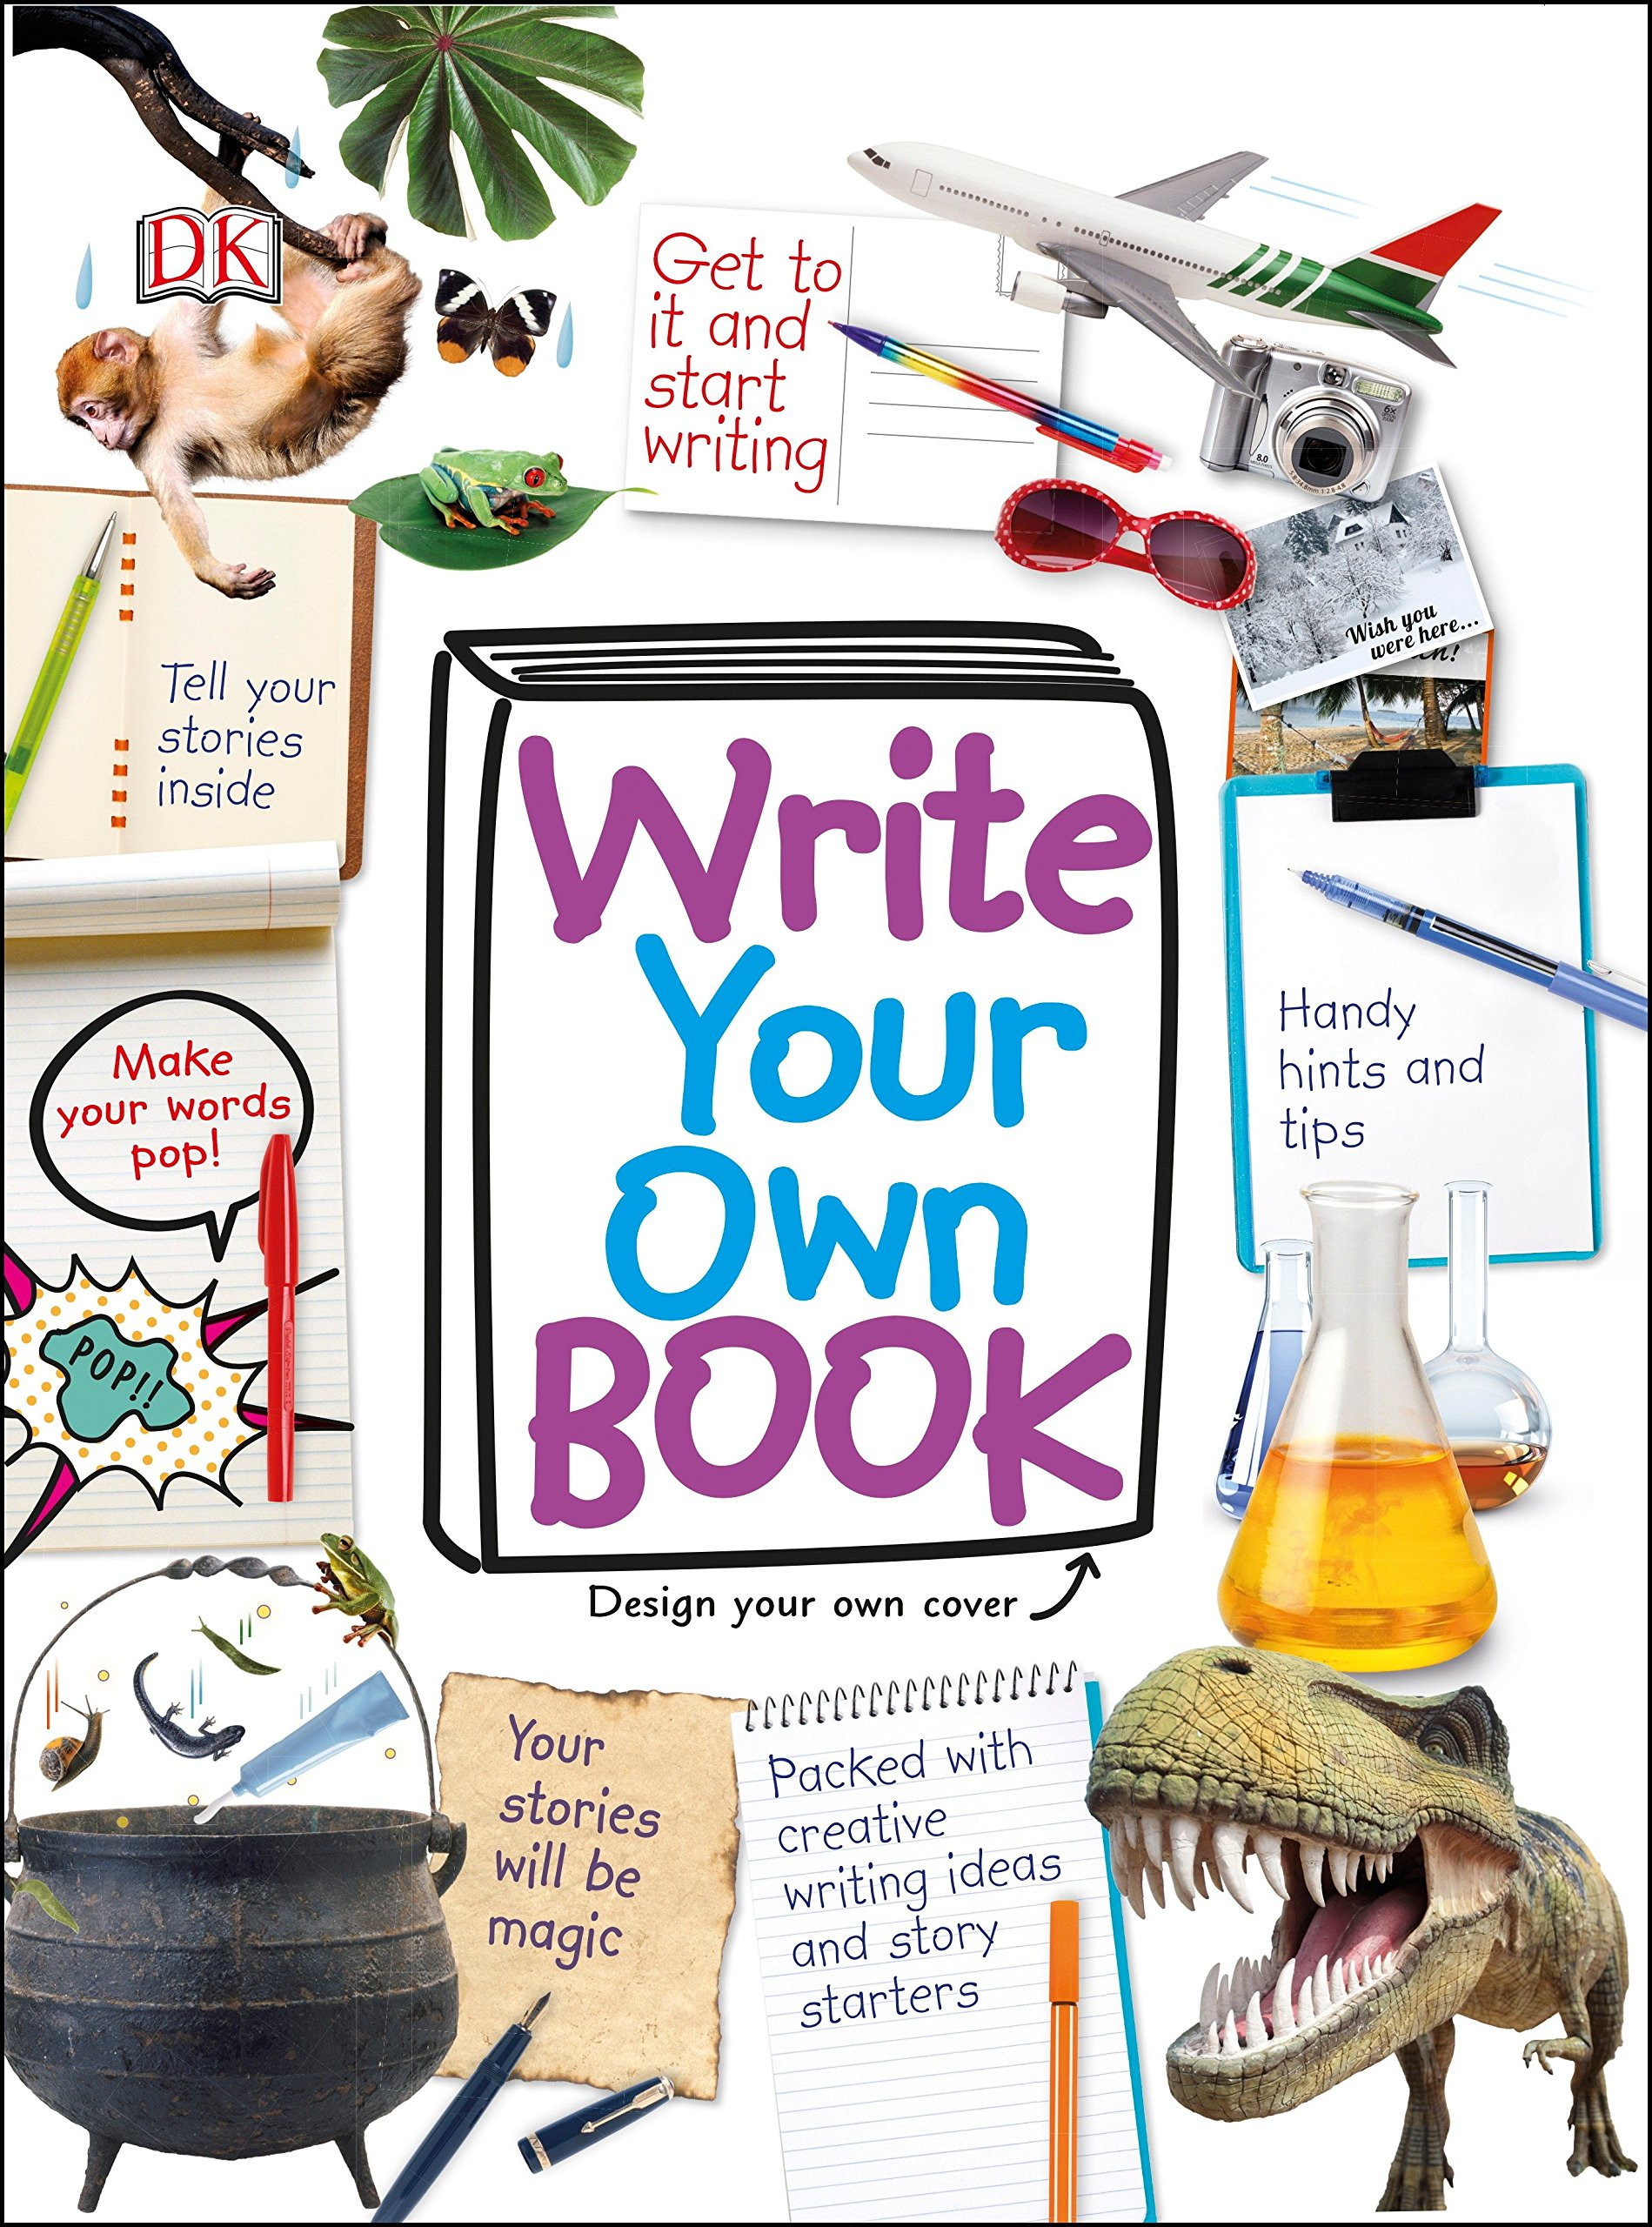 Write Your Own Book DK